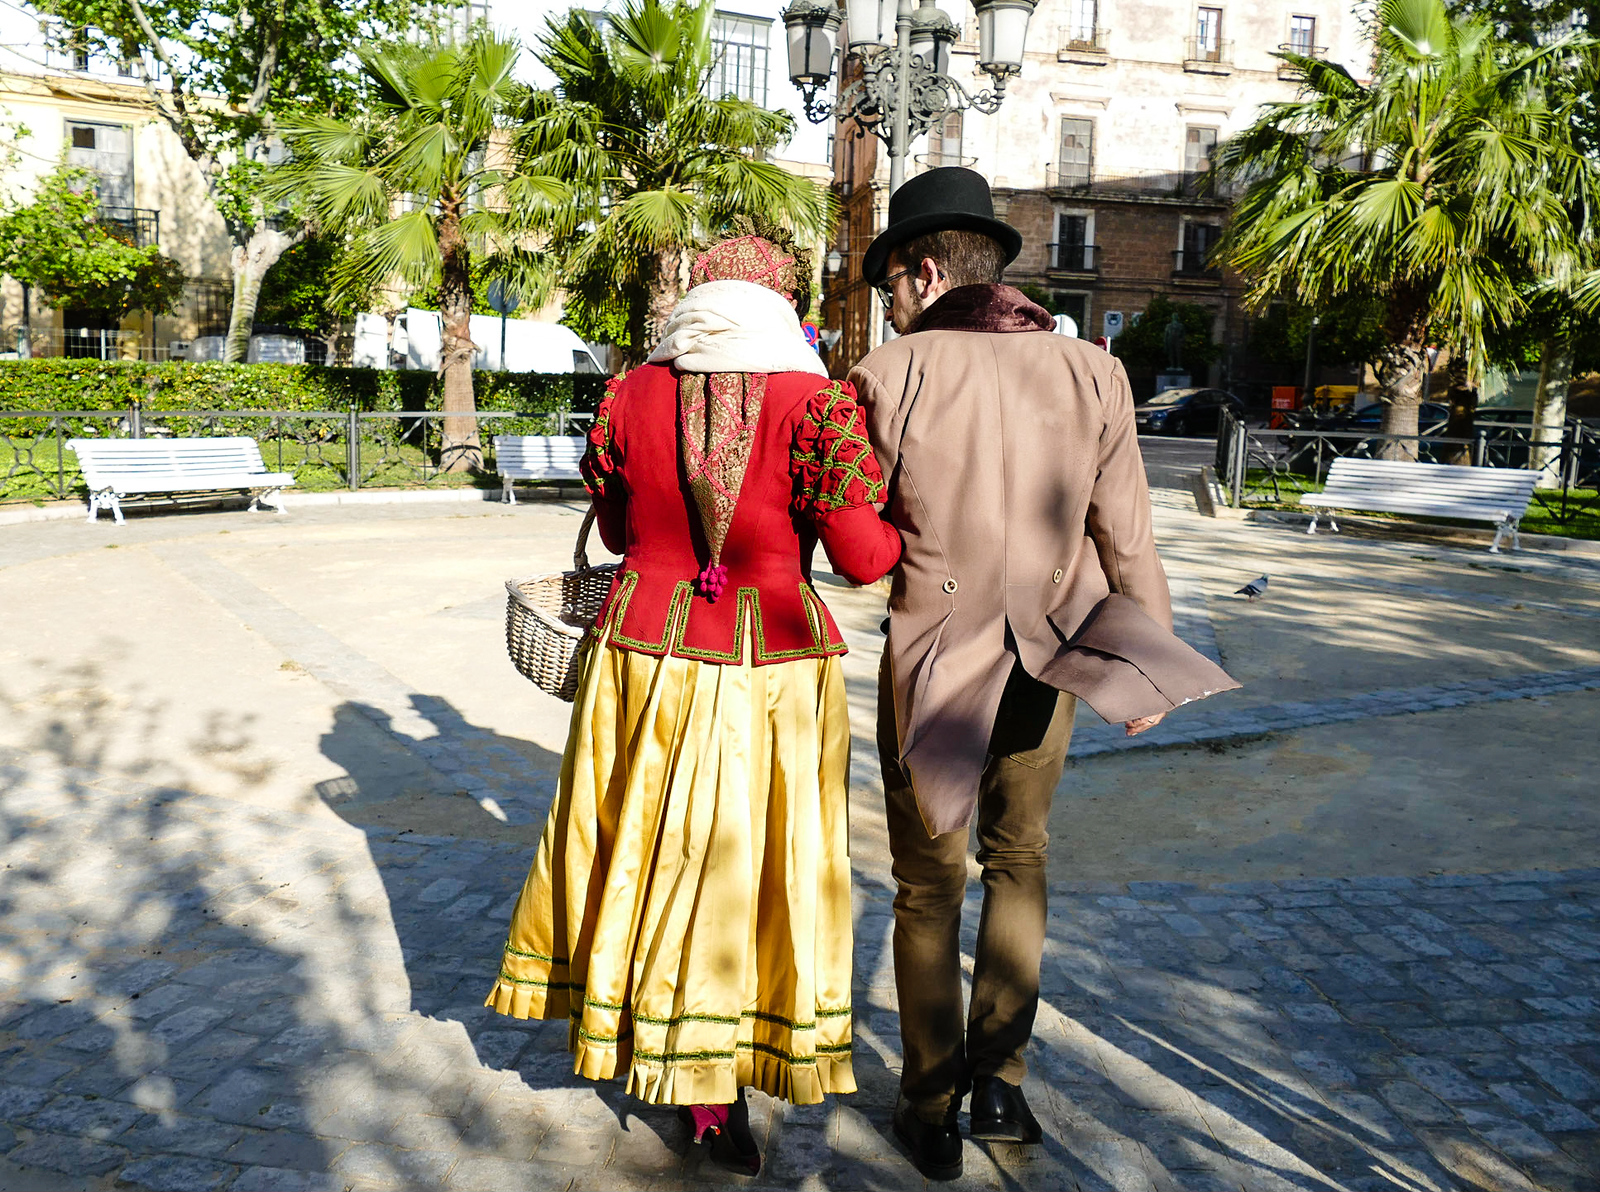 Following our guides, dressed in period costumes, we stroll through history on a Cadiz walking tour.